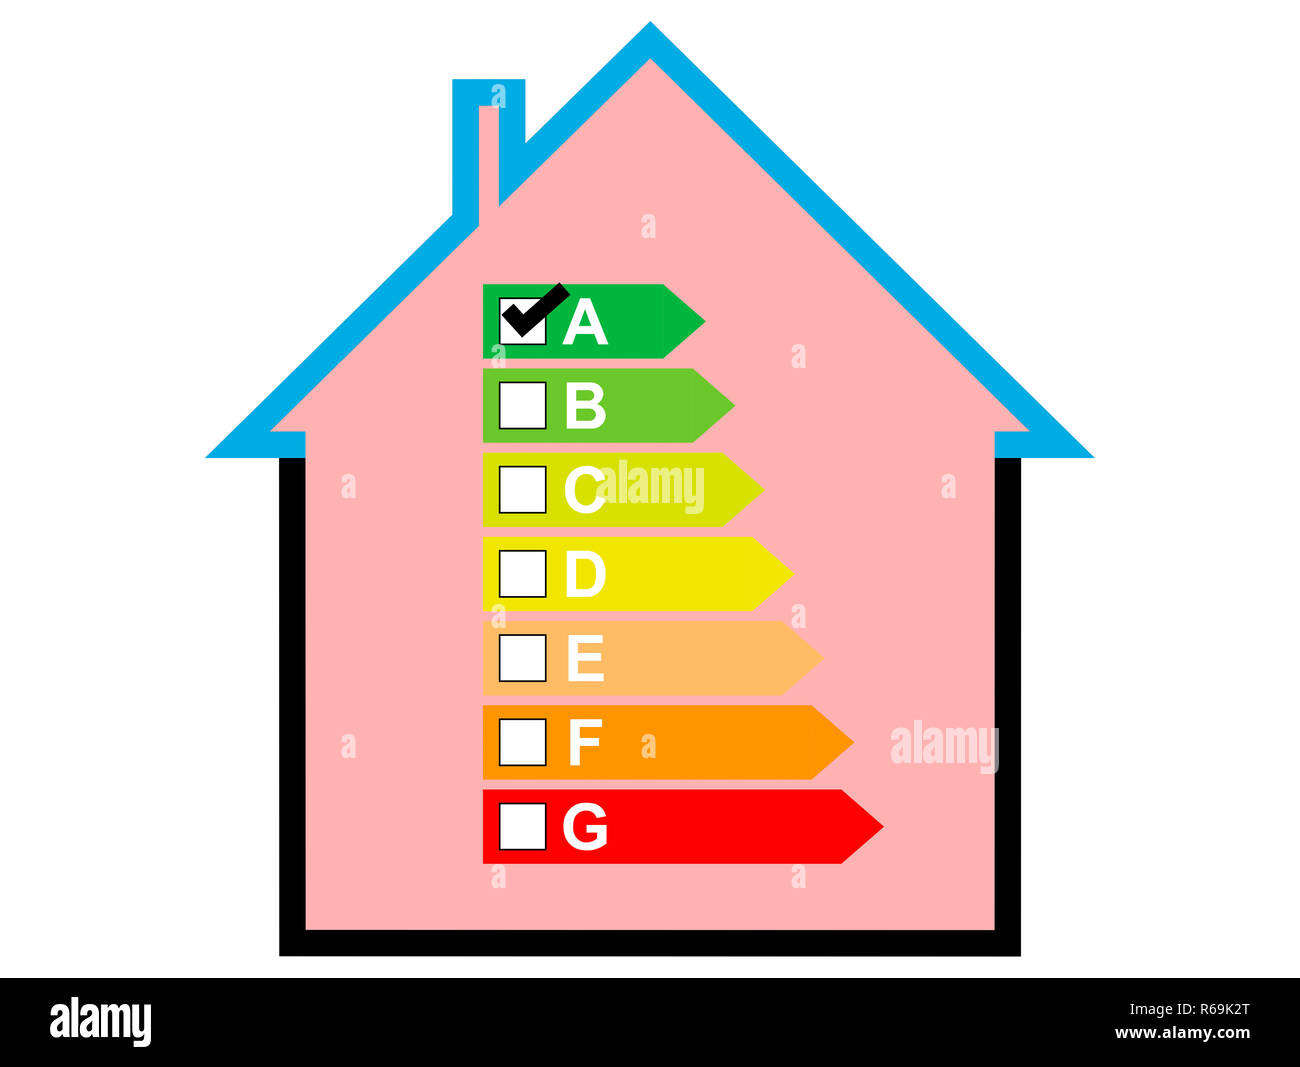 House With Low Energy Usage Stock Photo